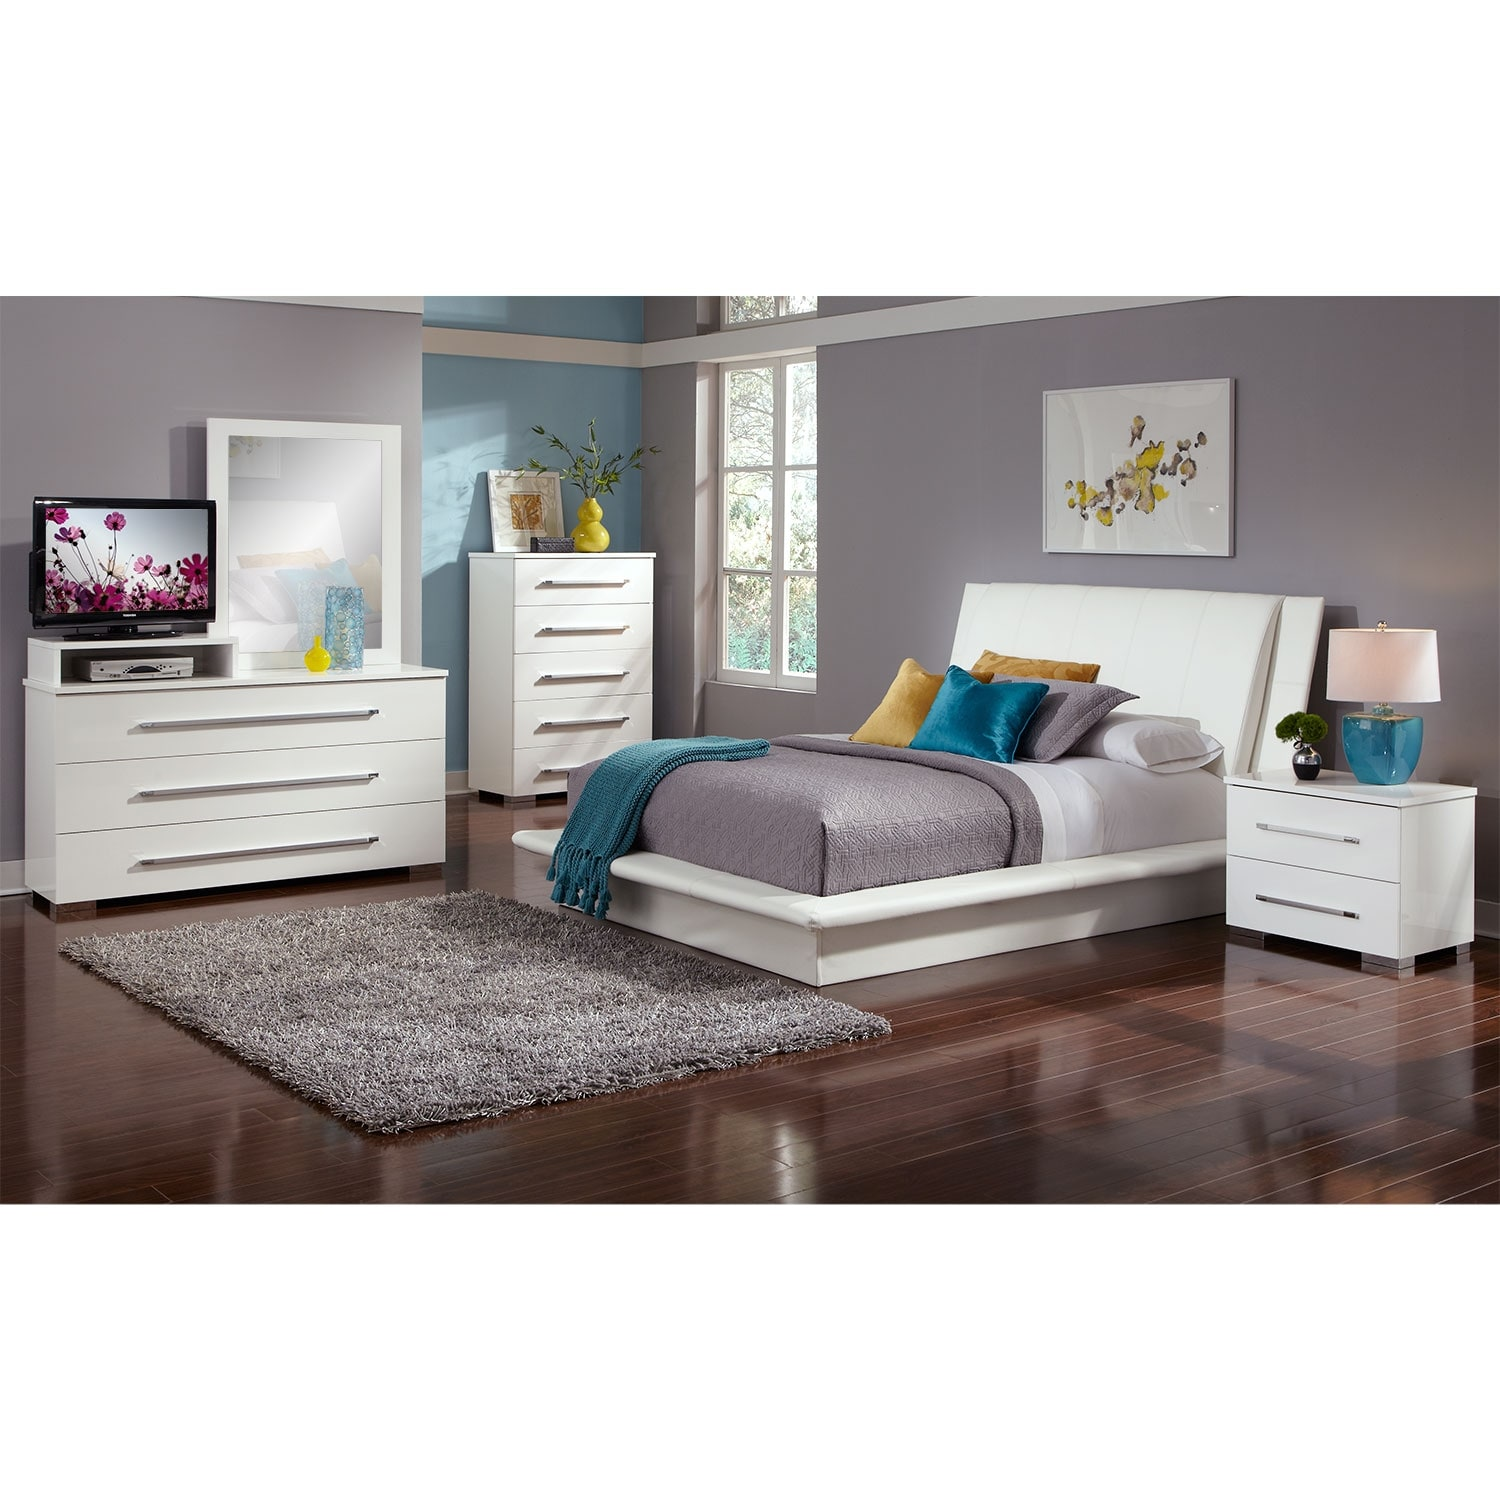 Bedroom Furniture - Dimora 7-Piece Queen Upholstered Bedroom Set with Media Dresser - White